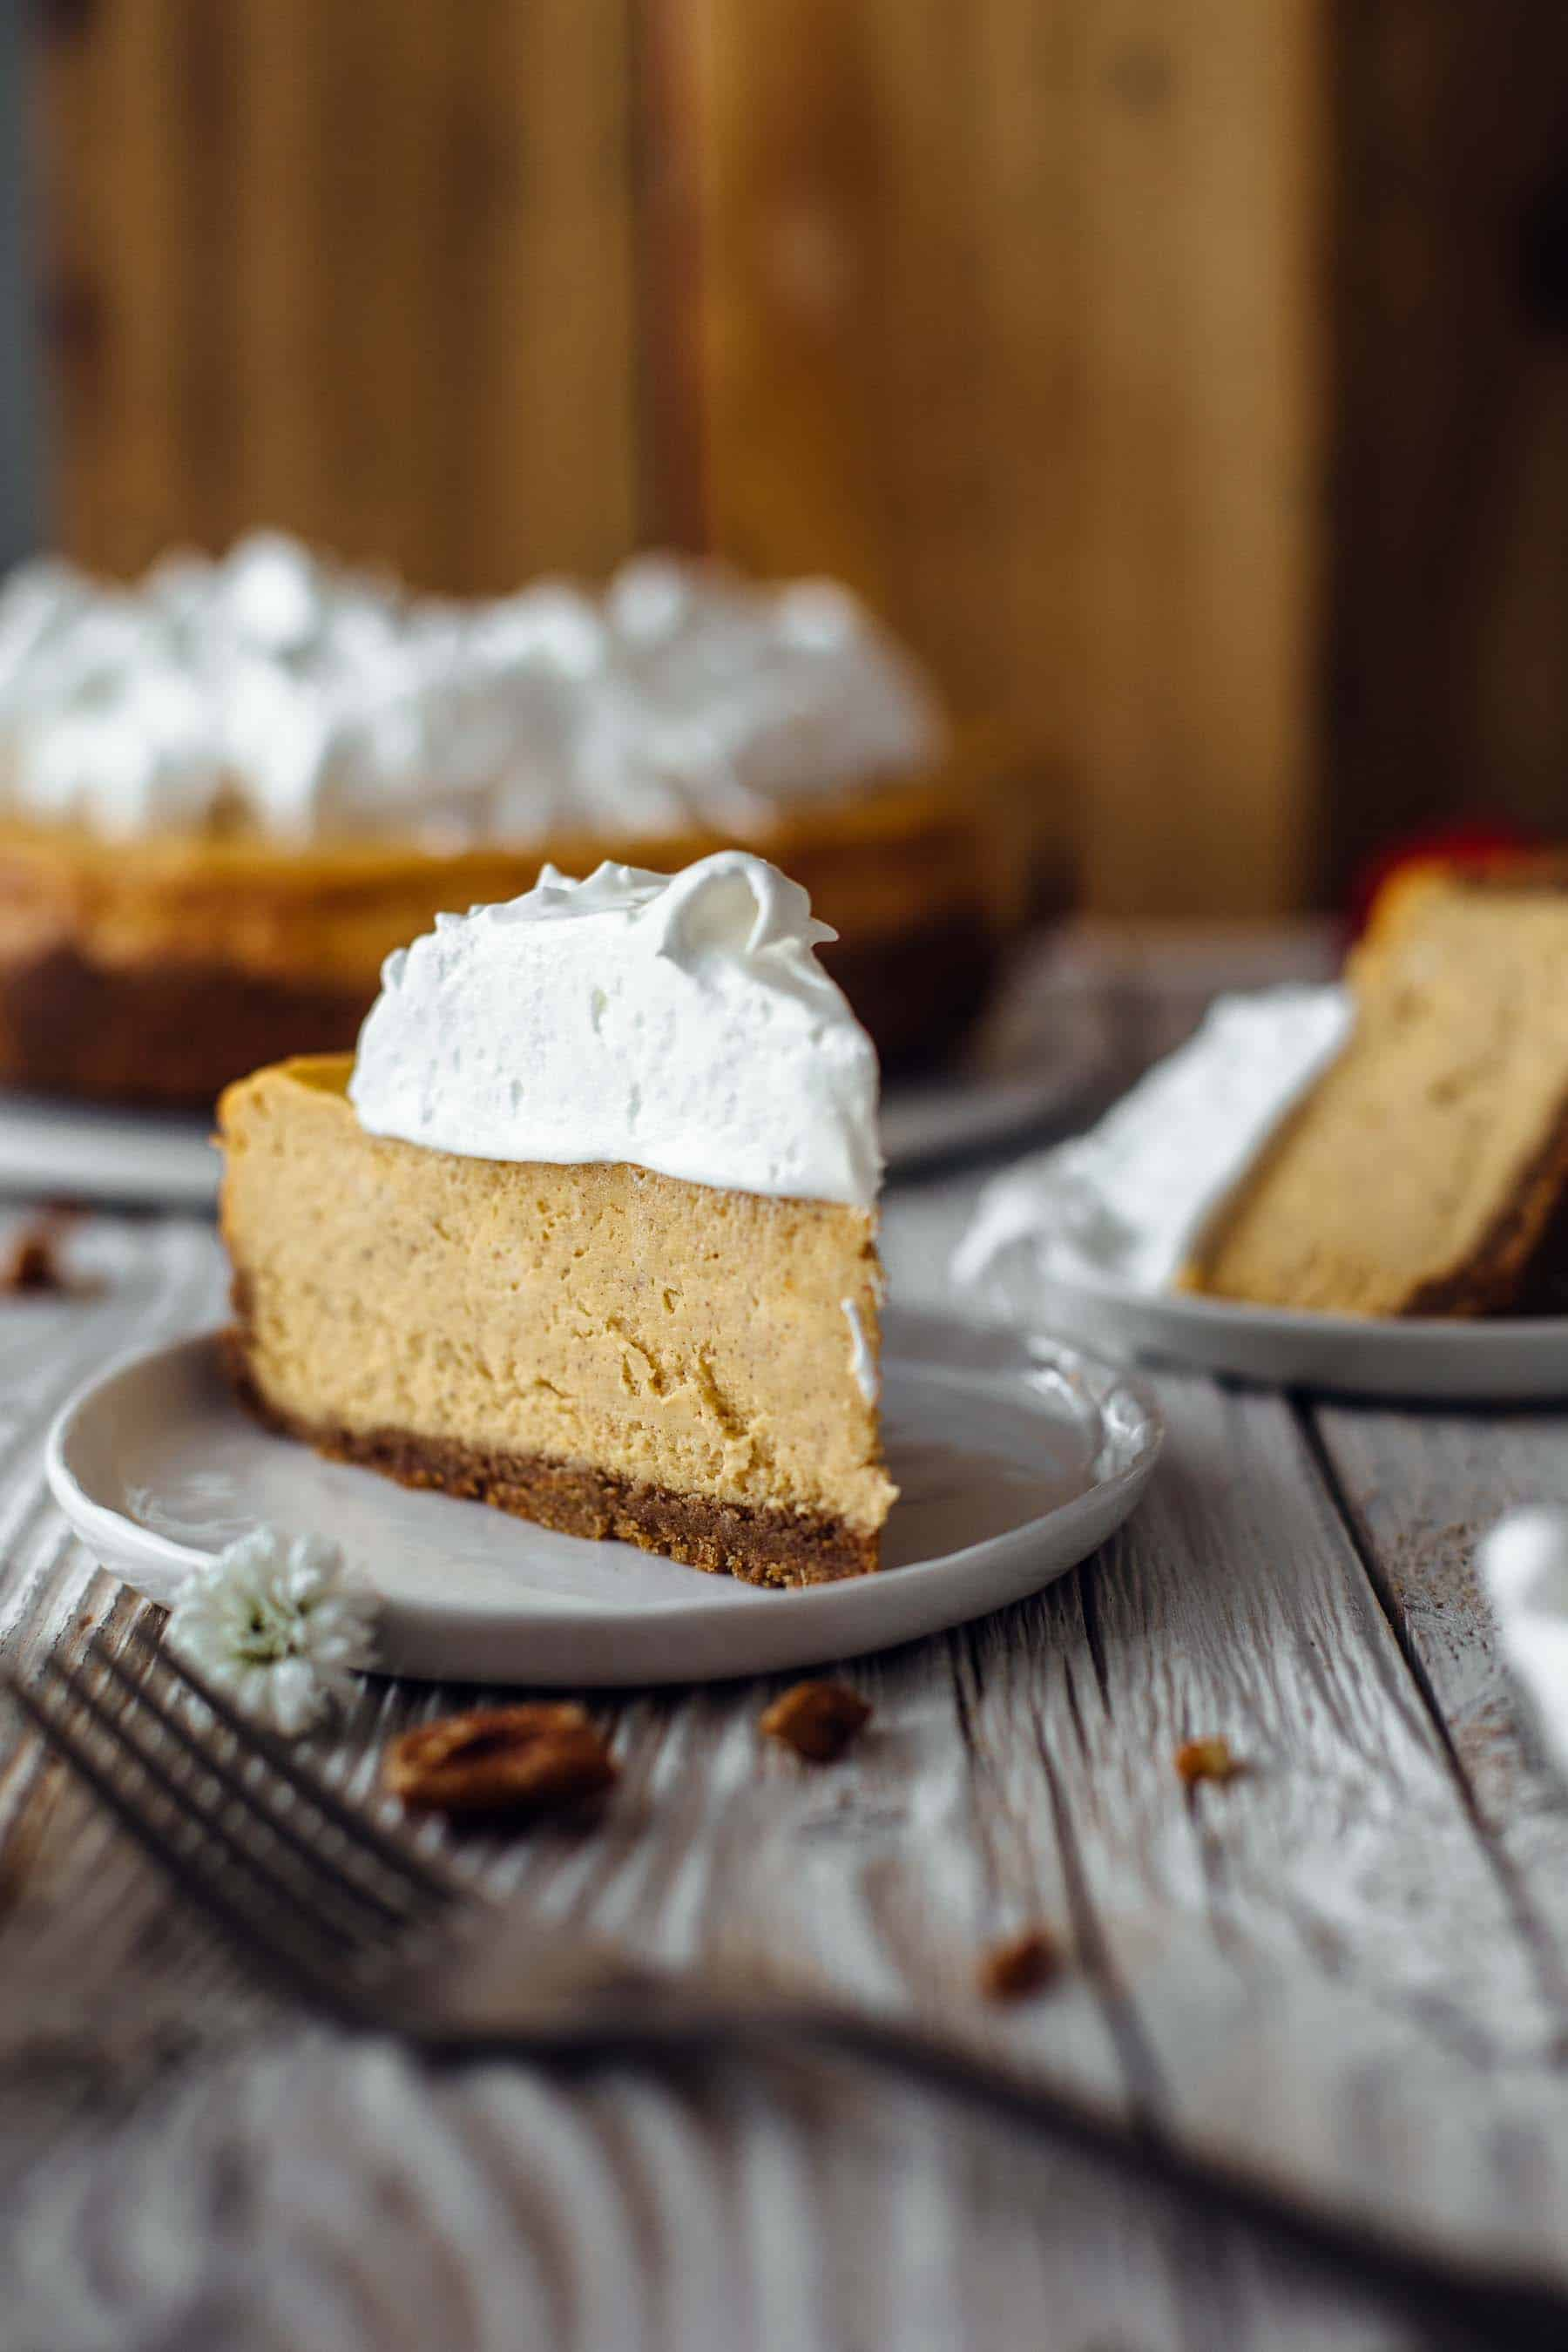 A slice of Sweet Potato Cheesecake with Marshmallow Meringue